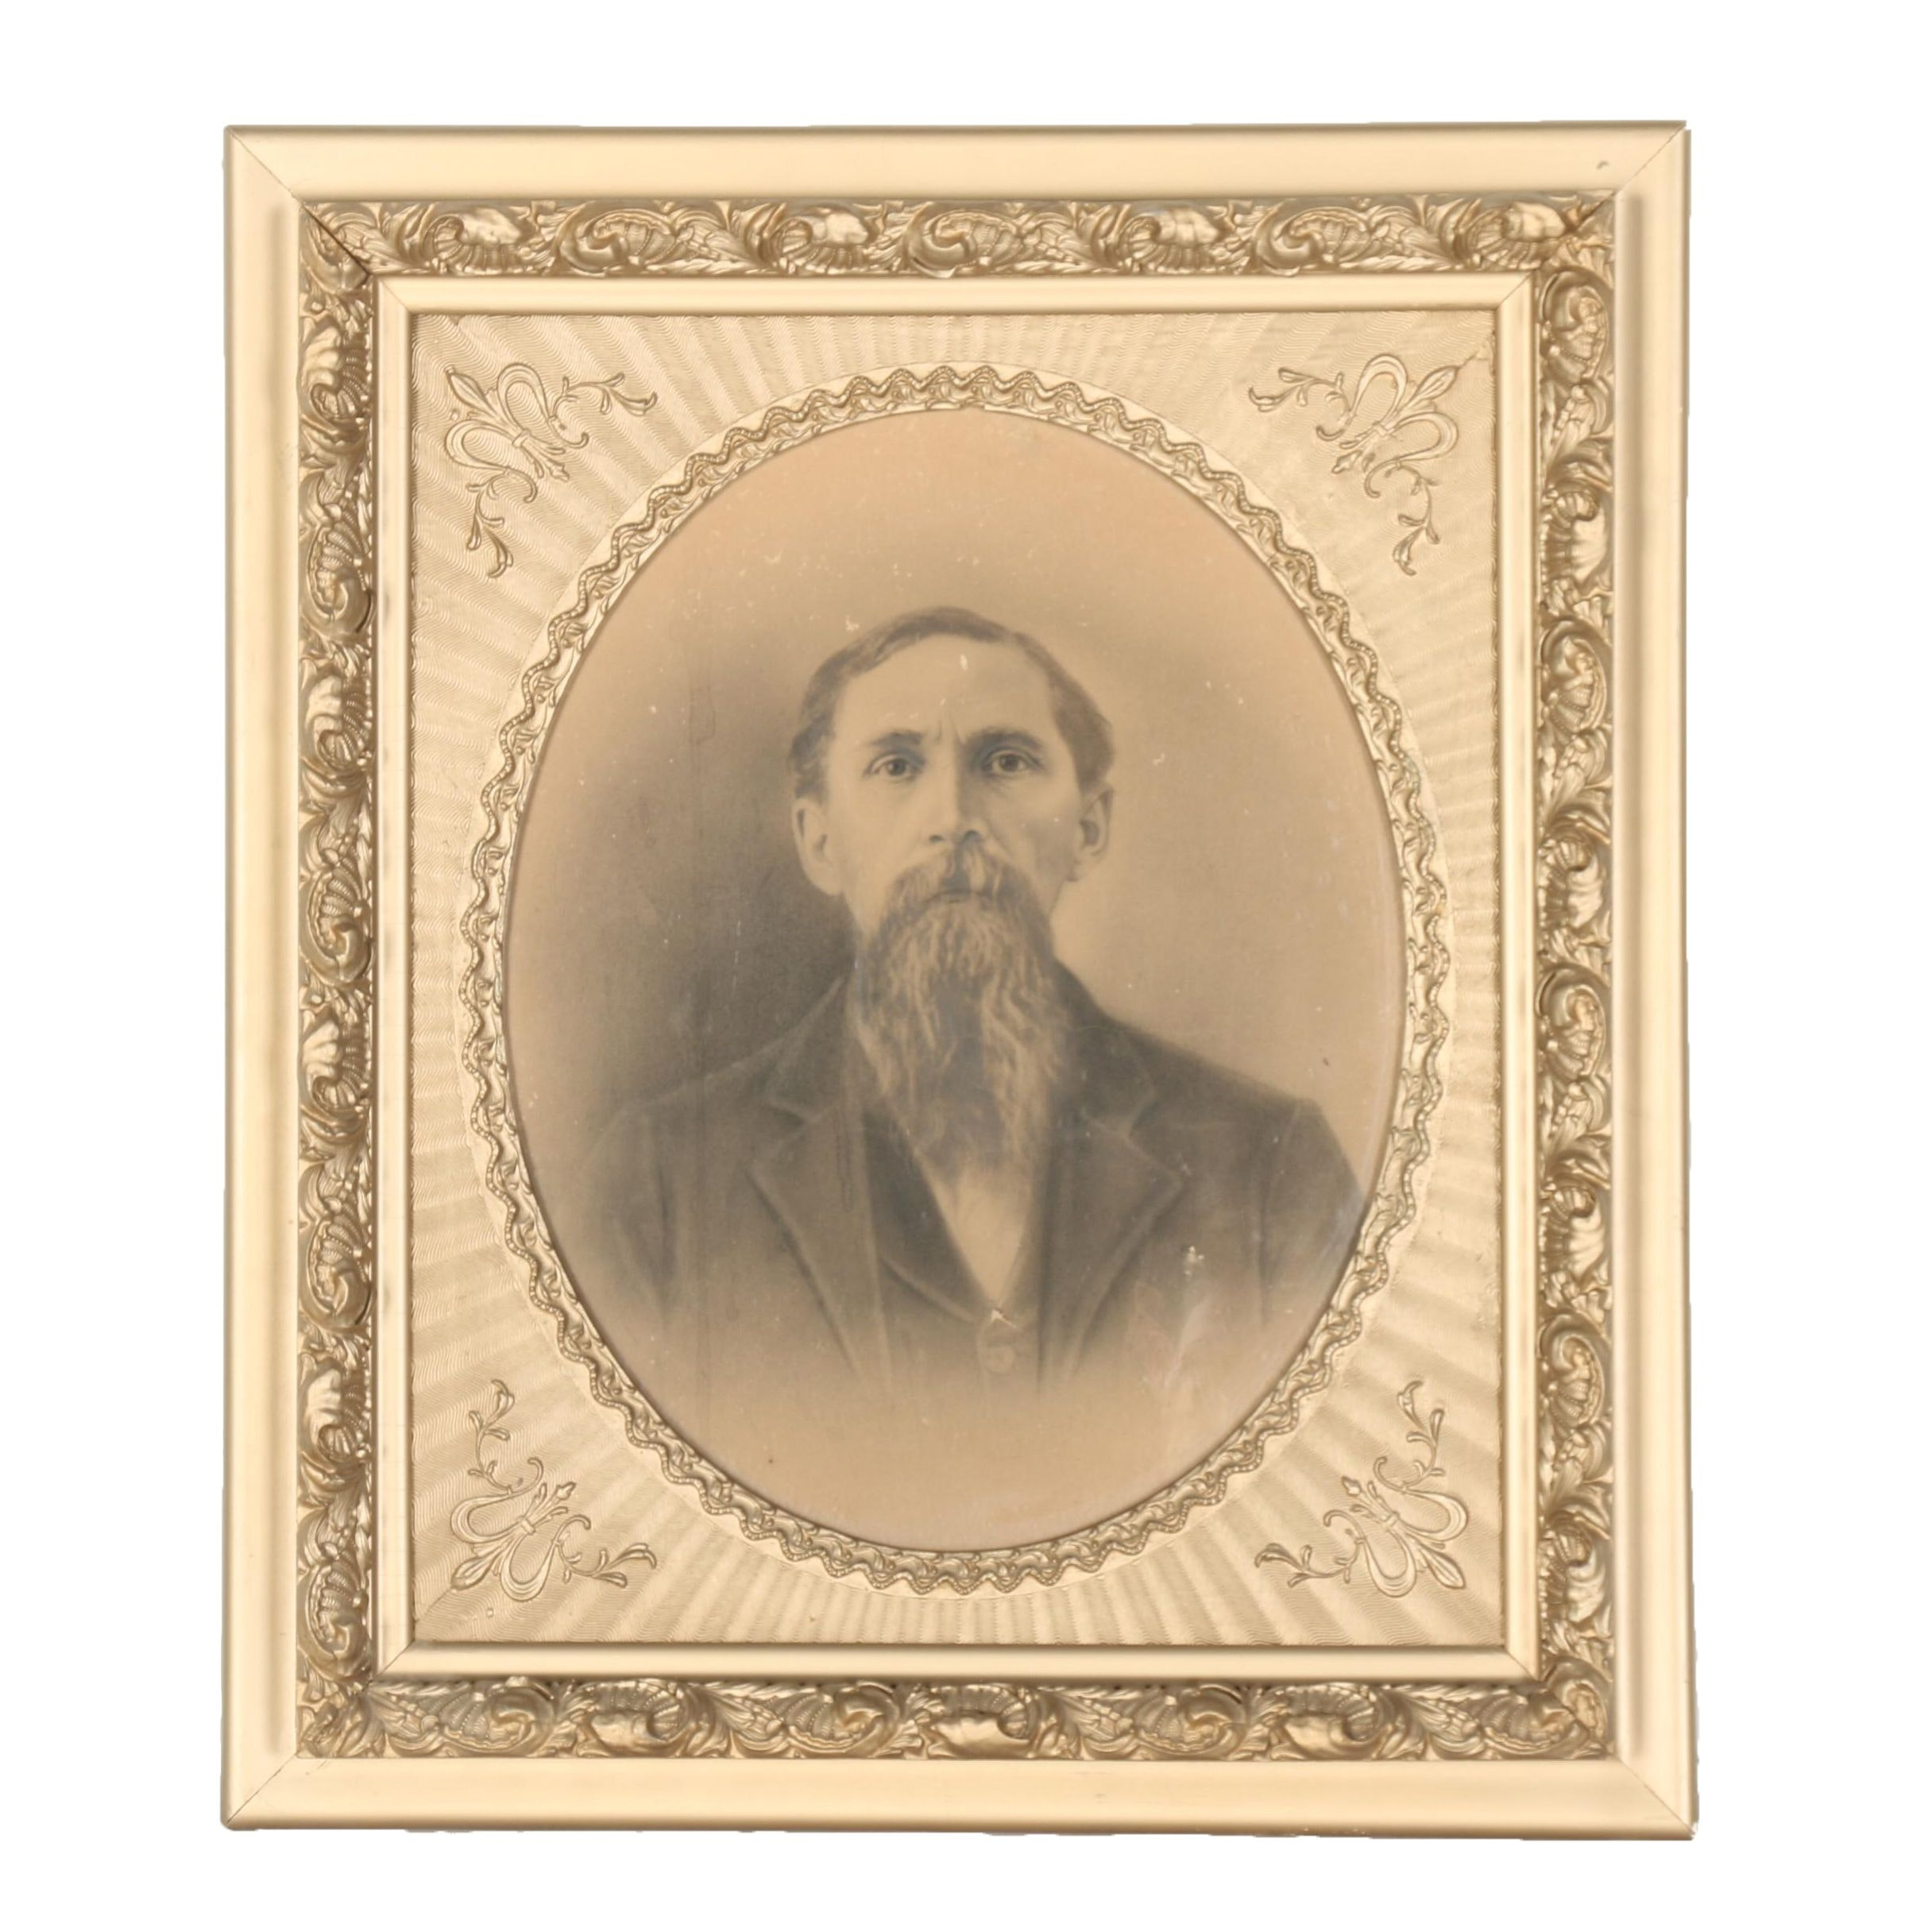 Framed Calotype Photographic Portrait of a Man